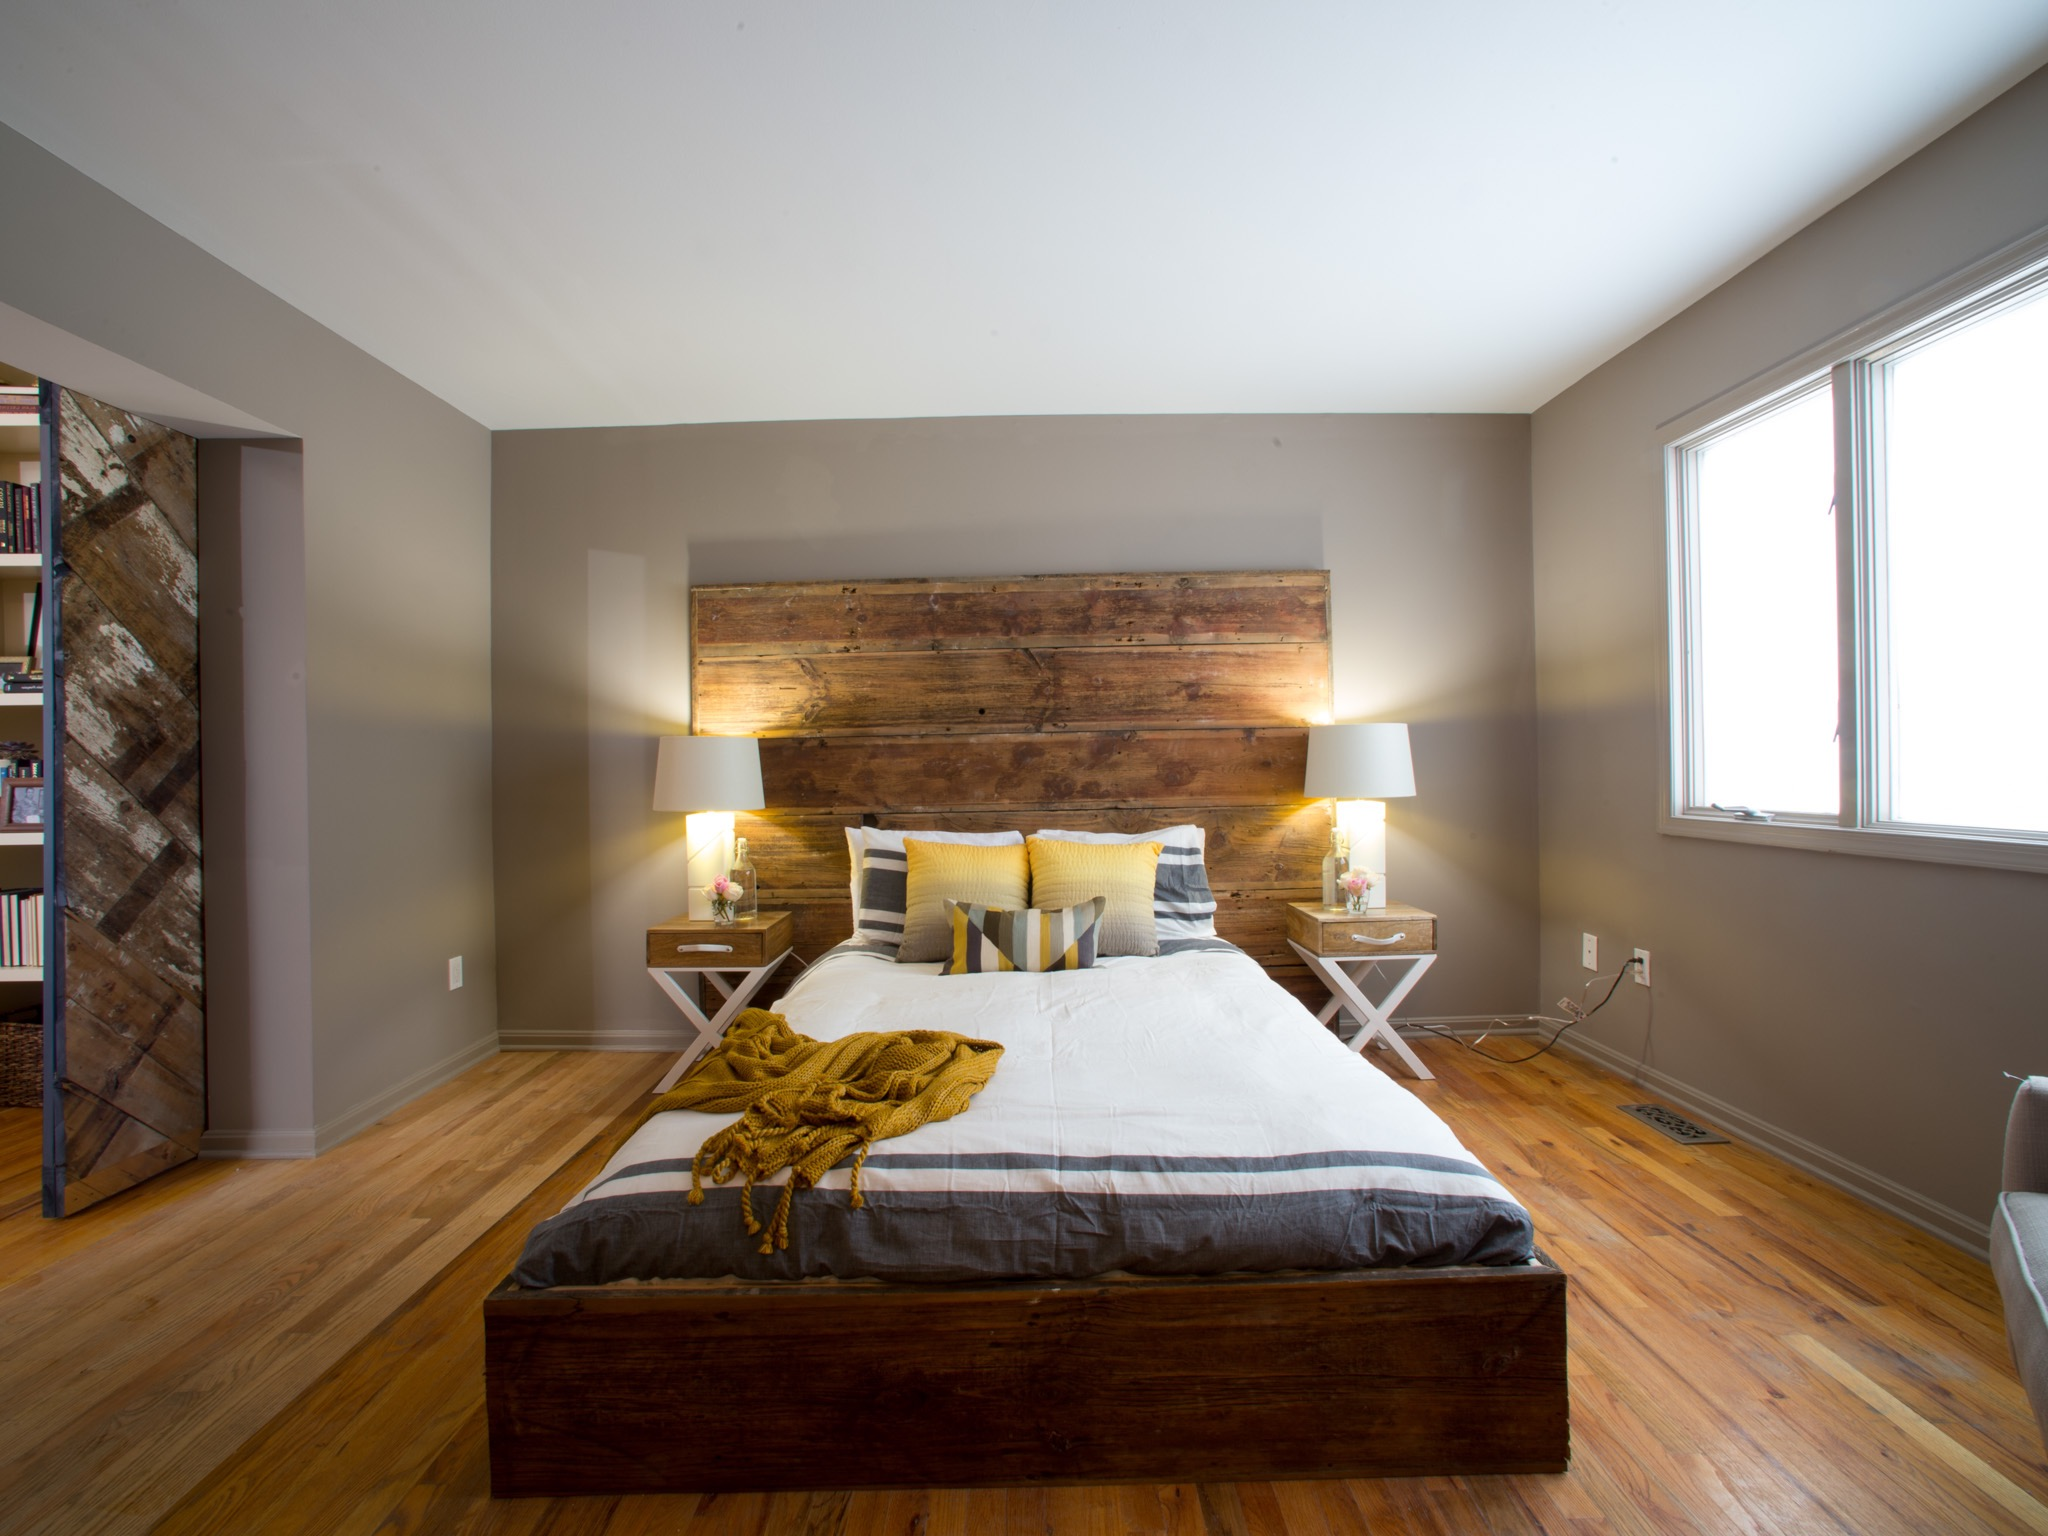 Contemporary Parents Bedroom With Gold And Yellow Accents And Rustic Headboard (Image 12 of 30)